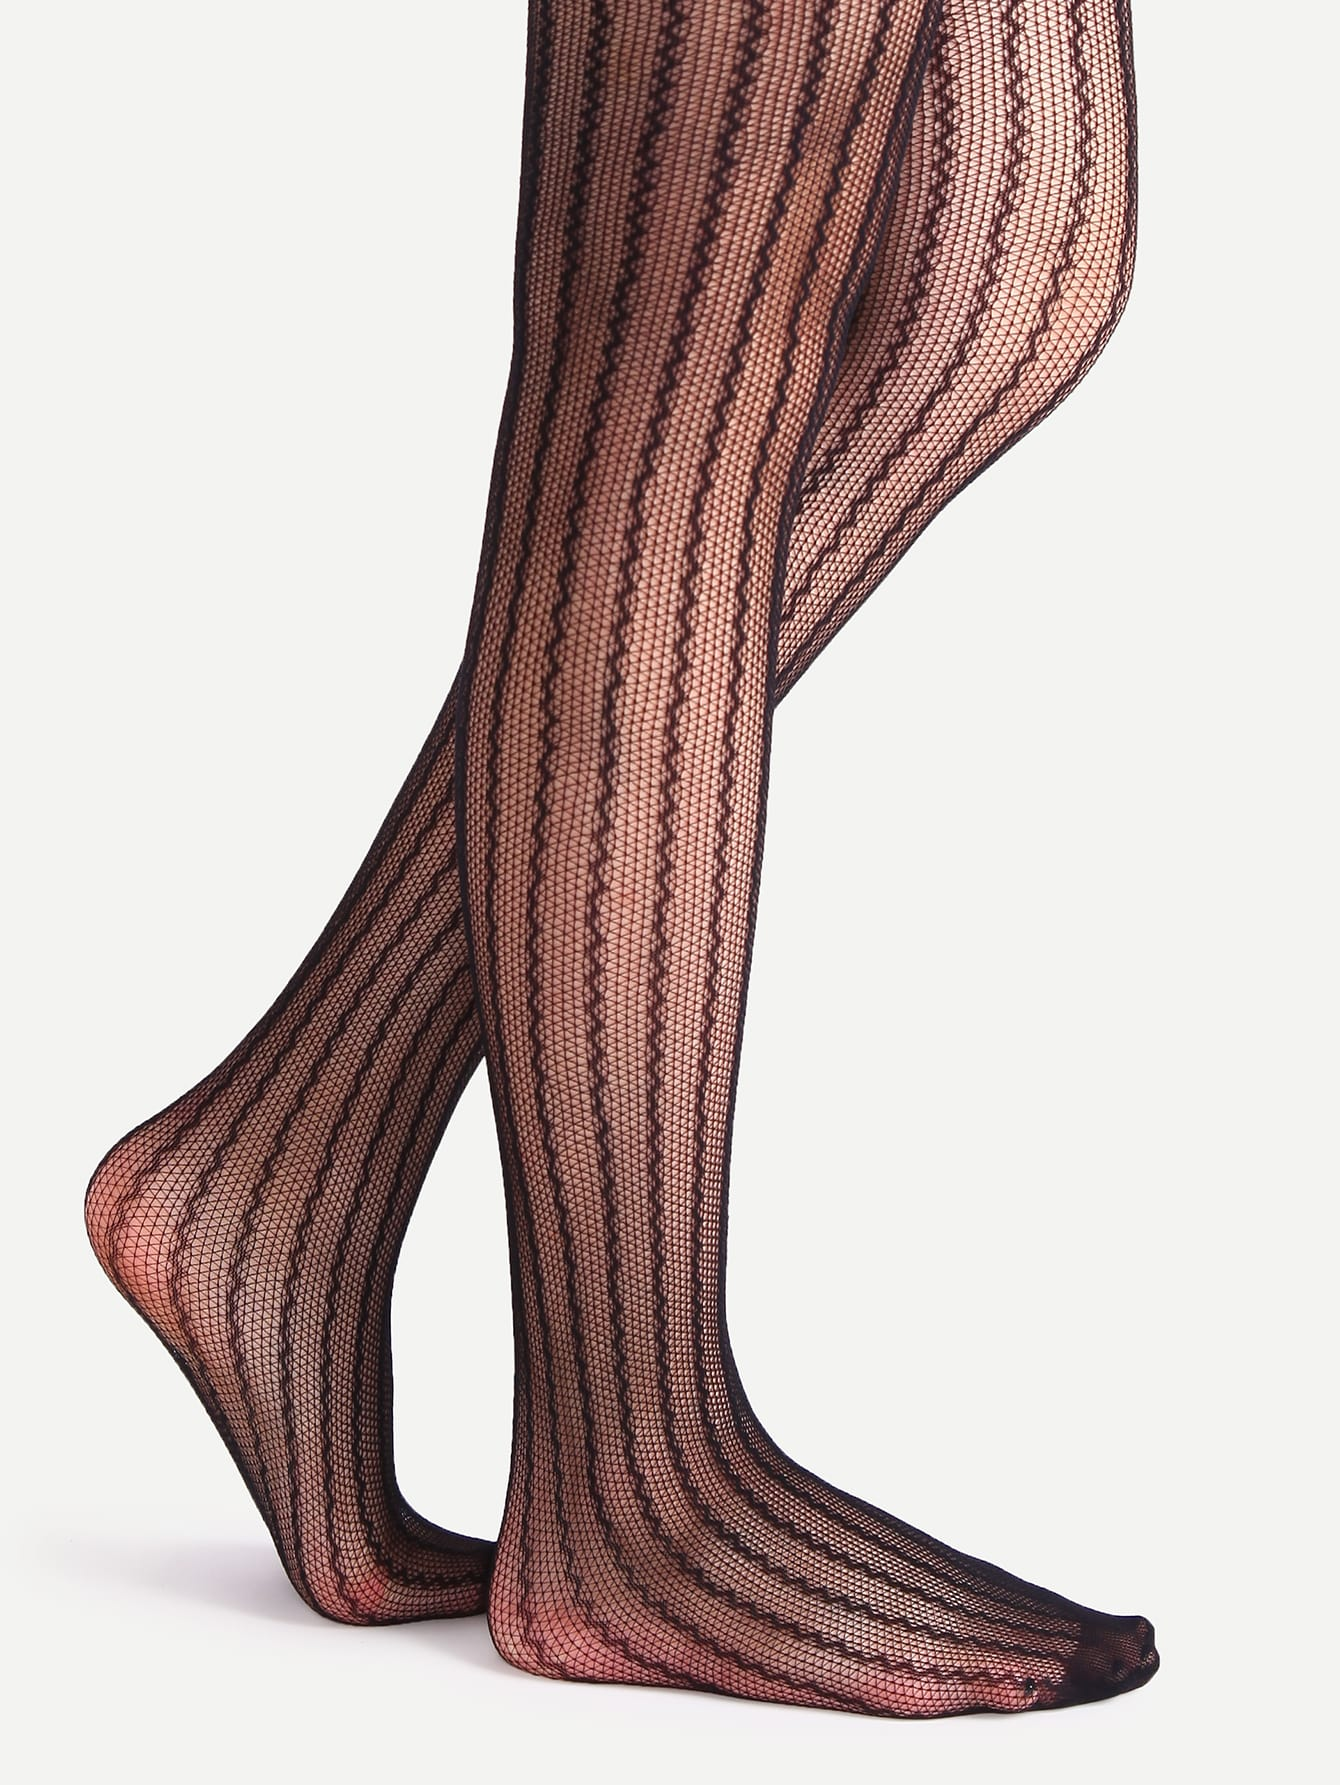 Black Hollow Striped Sexy Stretch Pantyhose StockingsBlack Hollow Striped Sexy Stretch Pantyhose Stockings<br><br>color: Black<br>size: one-size